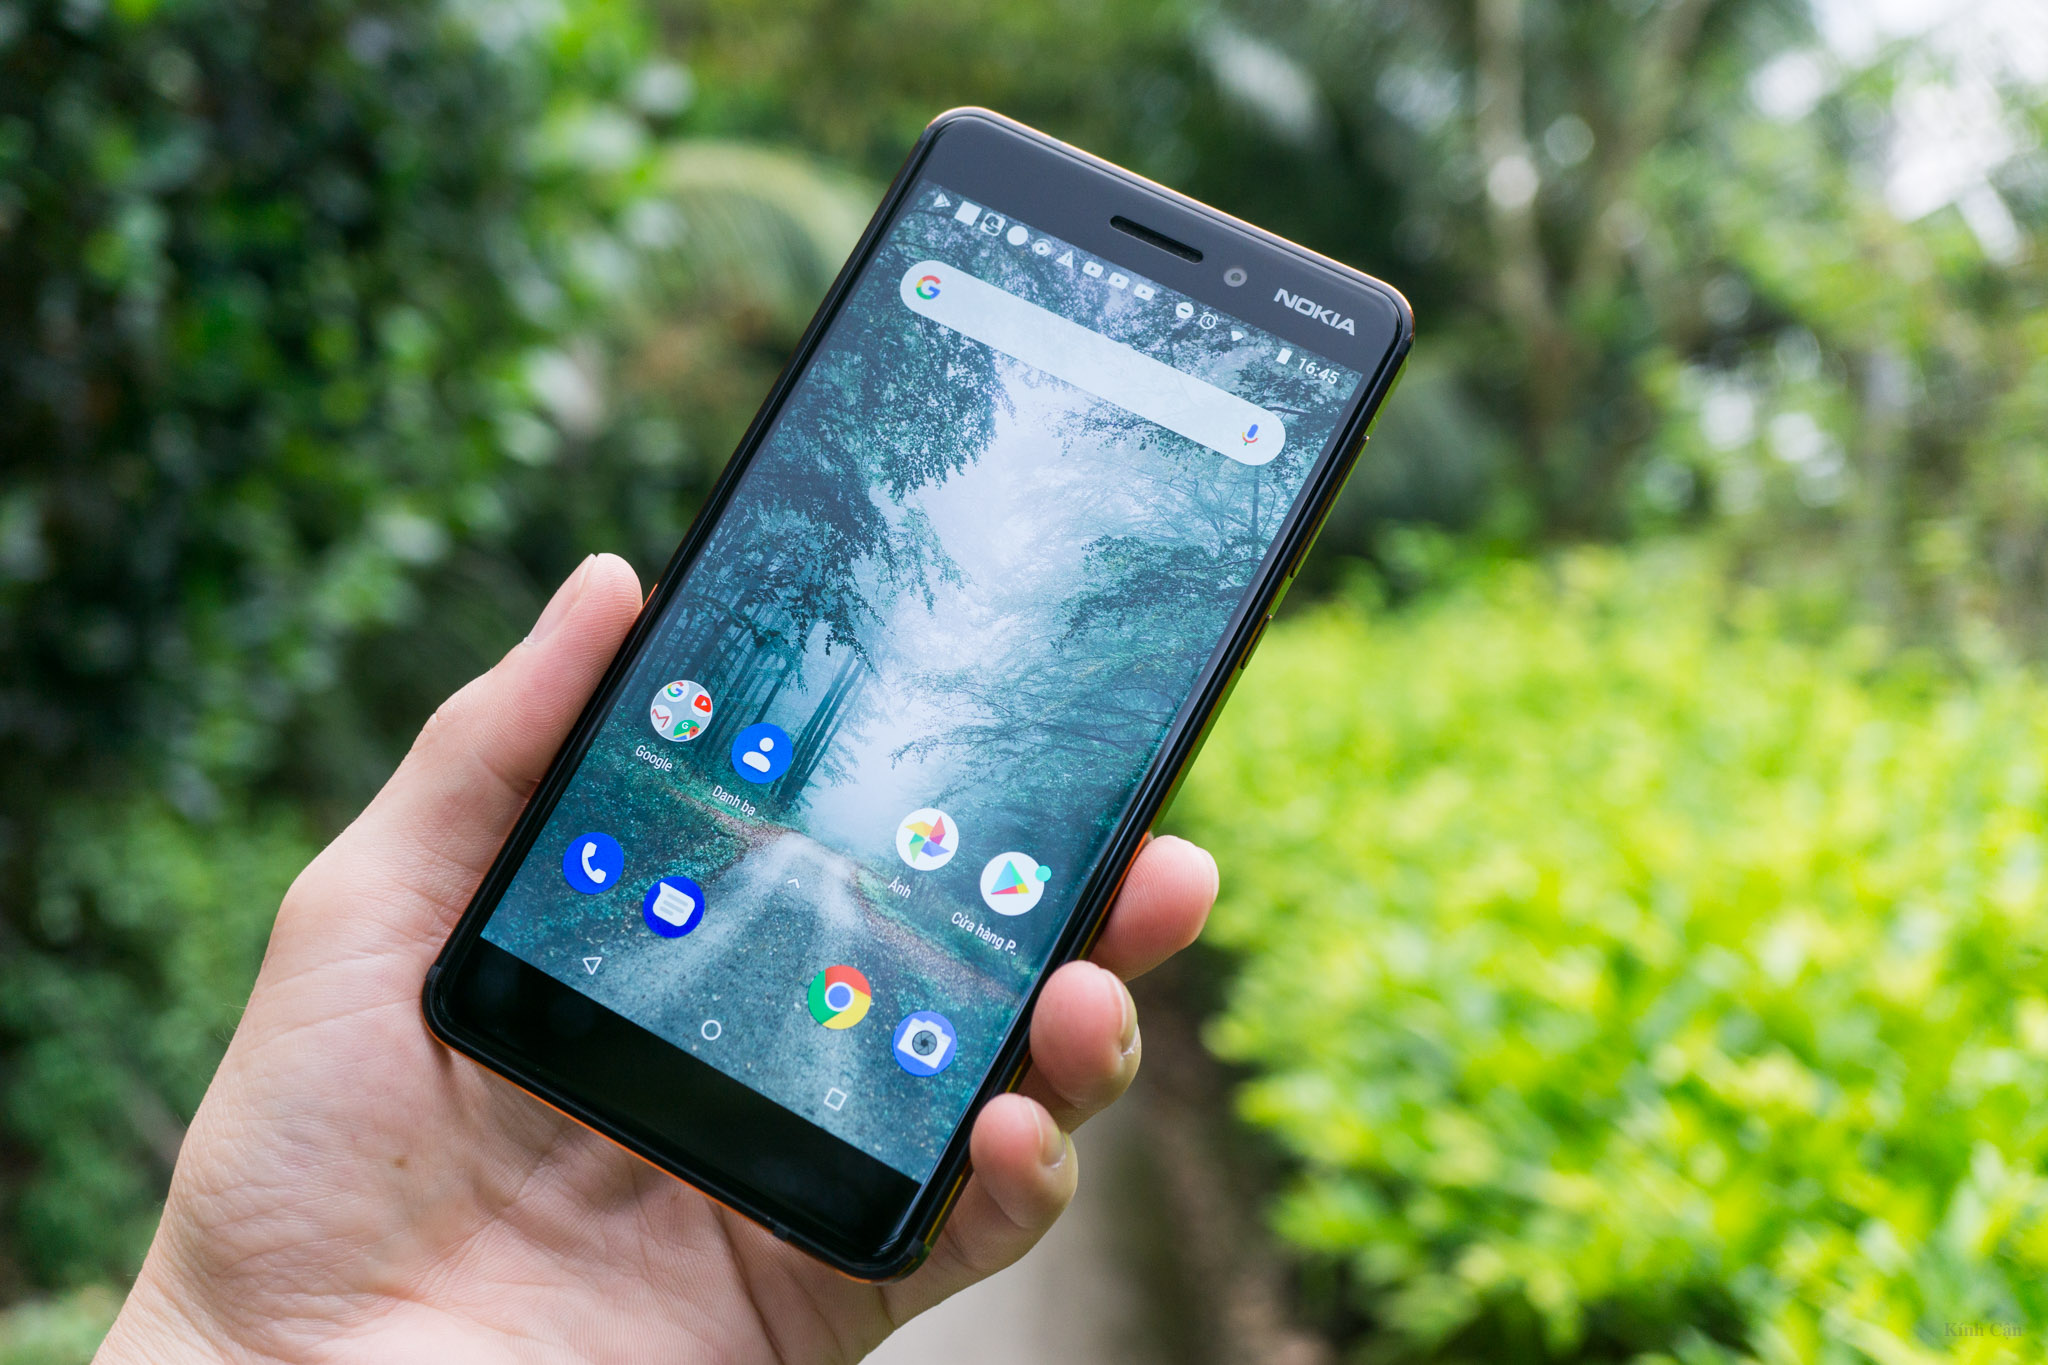 Android P Nokia 6 mới-5.jpg